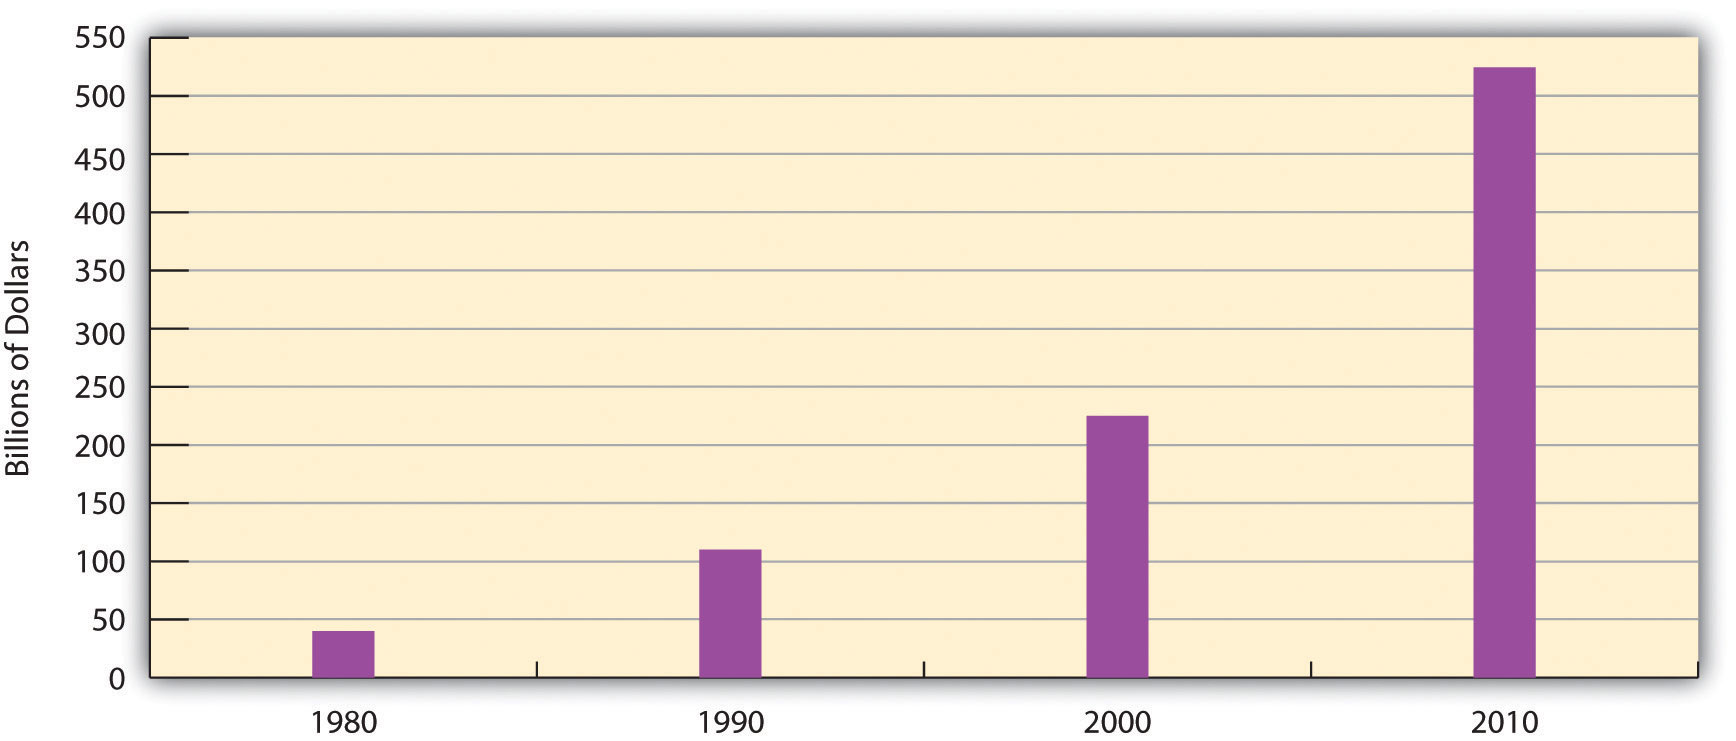 A graph of Medicare Expenditures from 1980-2010. They dramatically increase from 1980 to 2010